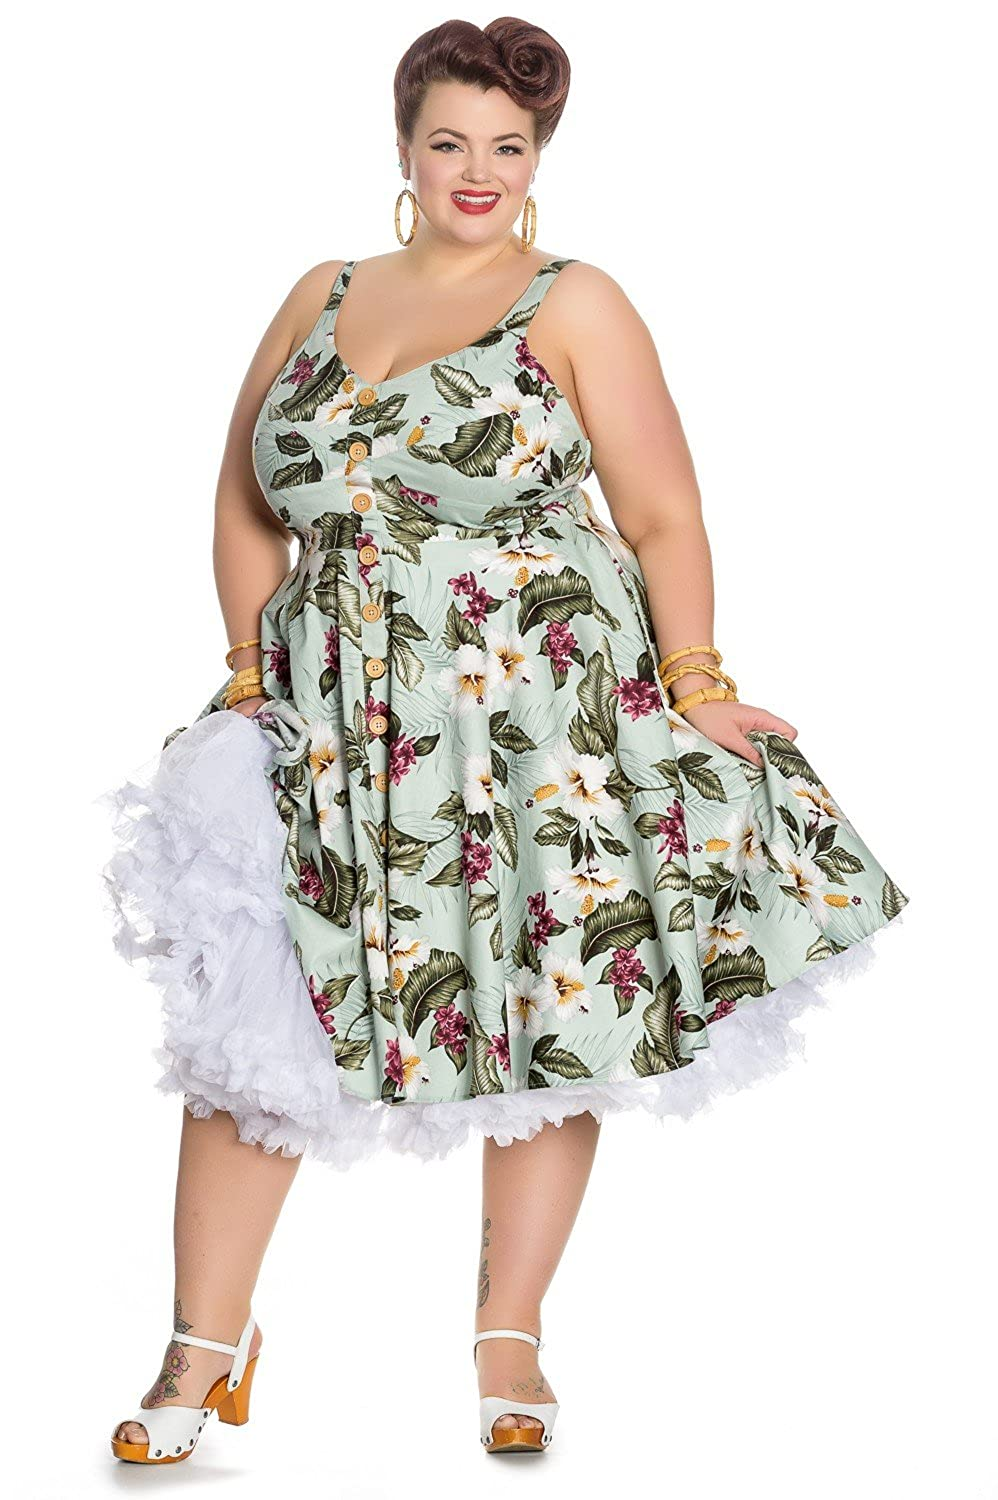 1950s Dresses, 50s Dresses | 1950s Style Dresses Hell Bunny Tahiti Tropical Floral 50s Vintage Rockabilly Flare Swing Party Dress $61.99 AT vintagedancer.com